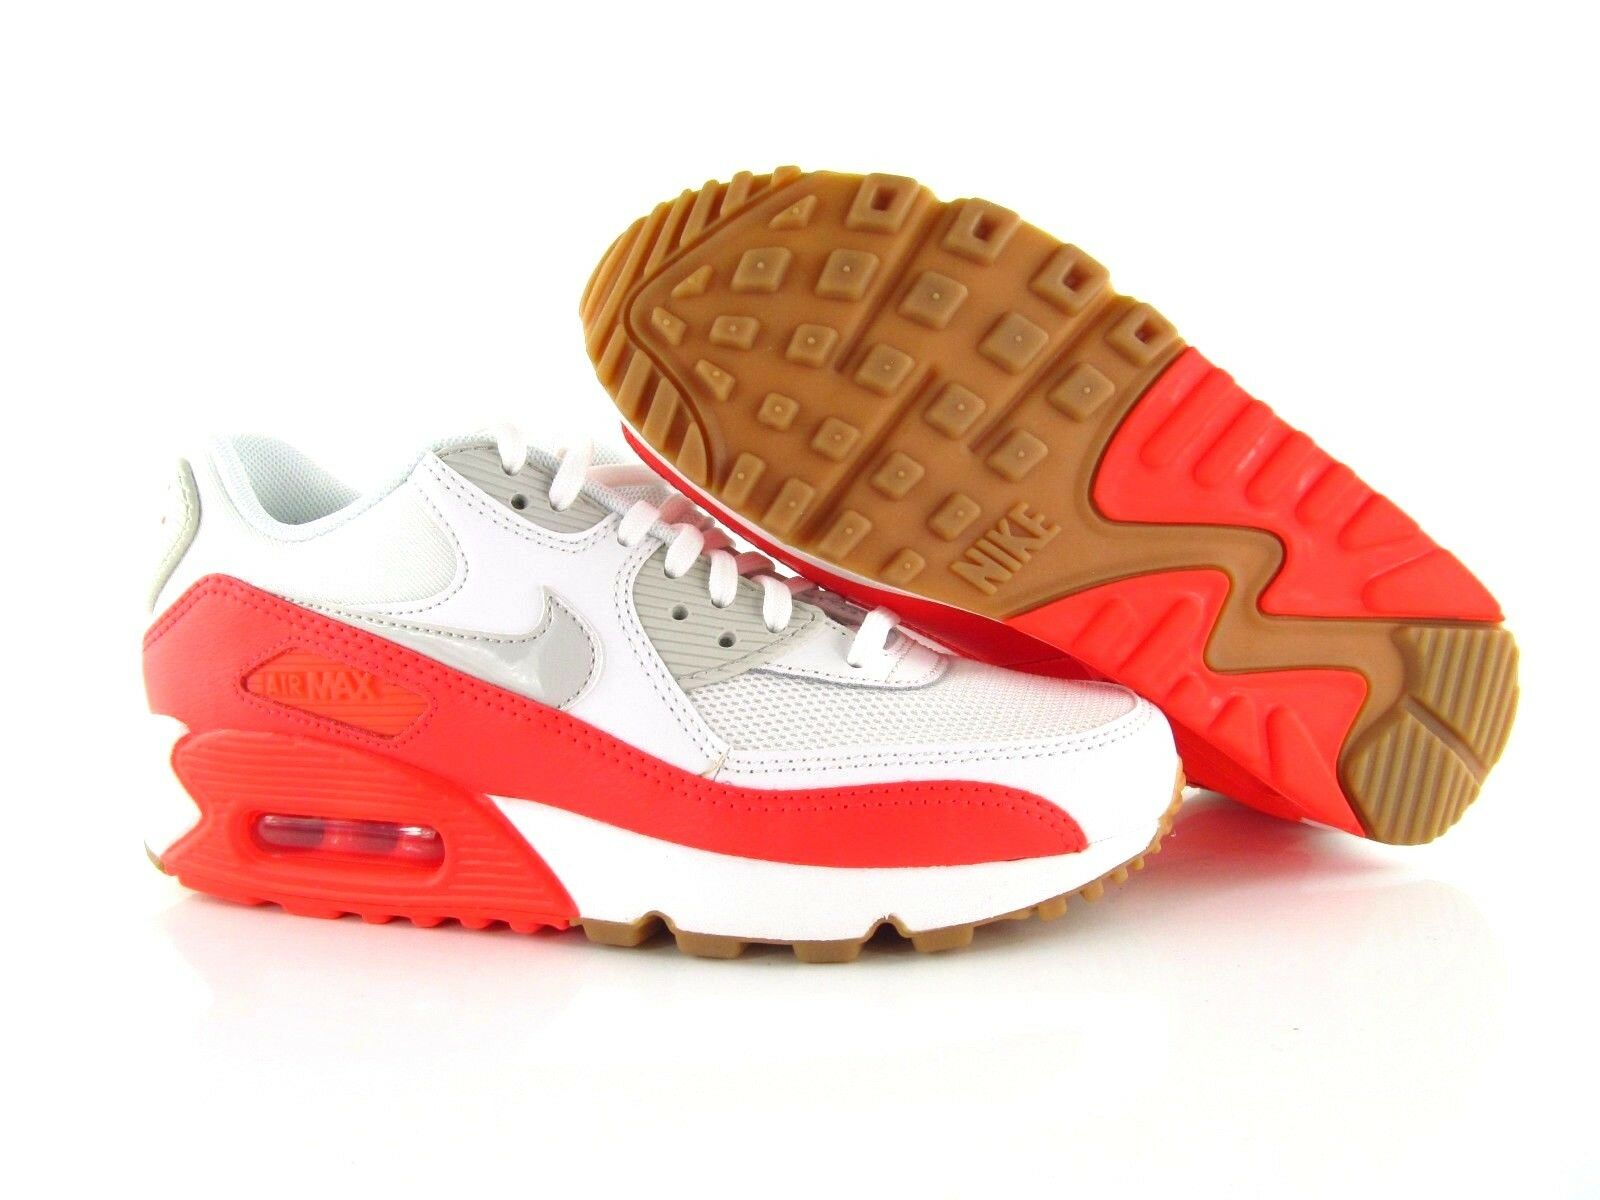 Nike Air Max 90 Essential blanc 1 rouge us_6 uk_3.5 EUR 36.5